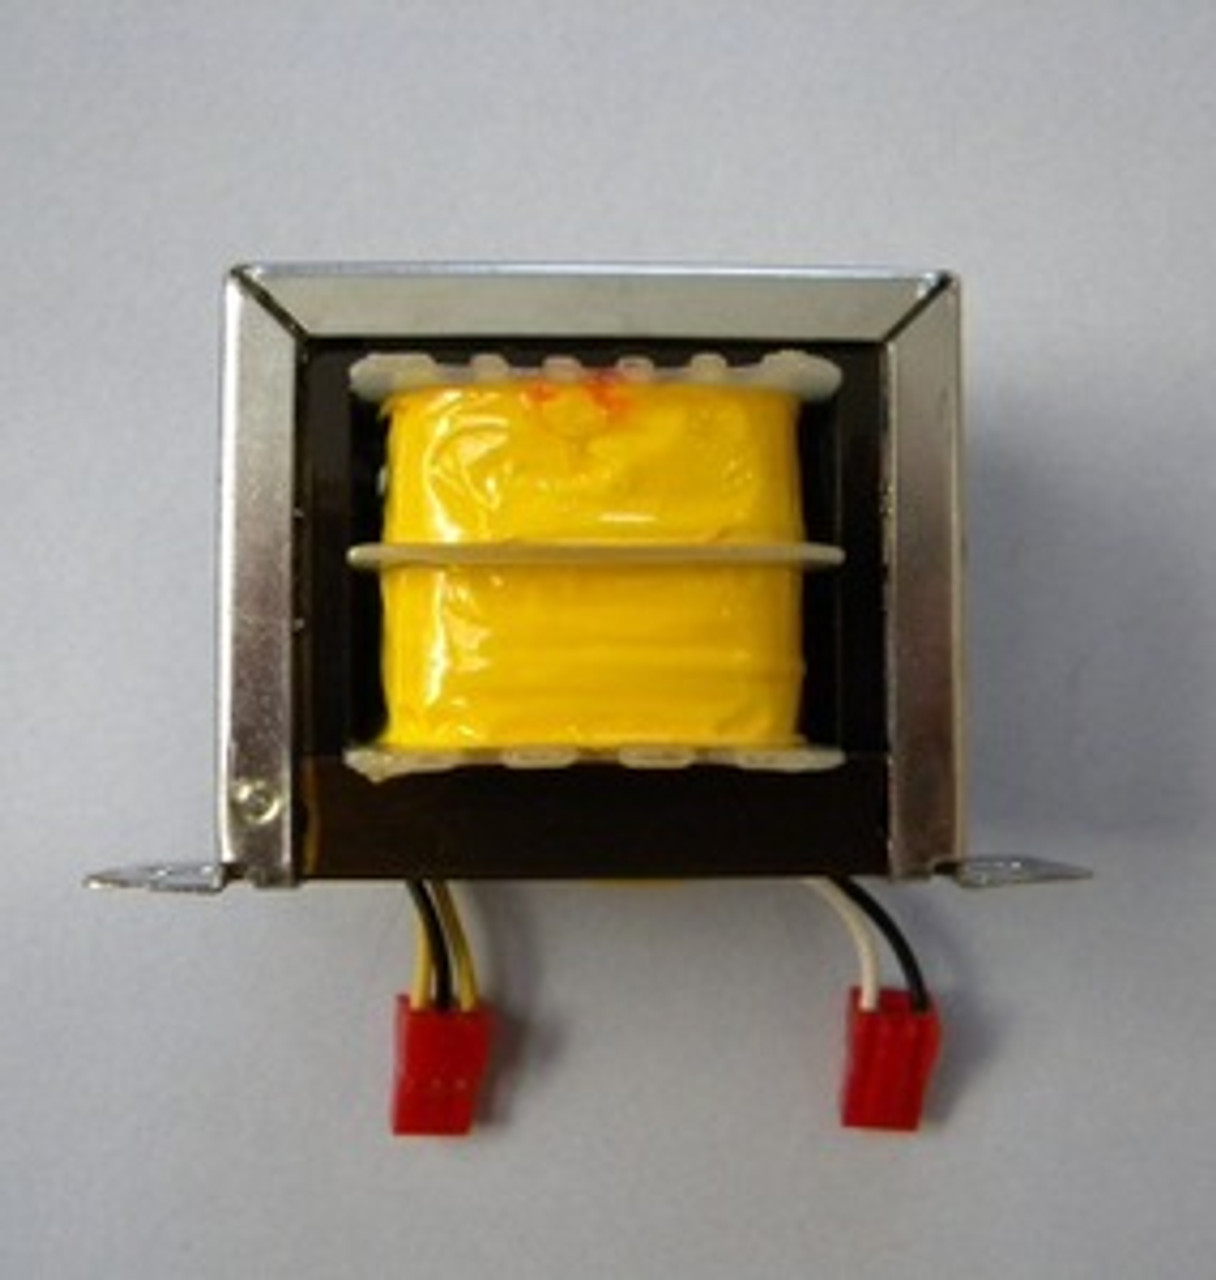 Treadmill Transformer Part Number P66A-M3500MA